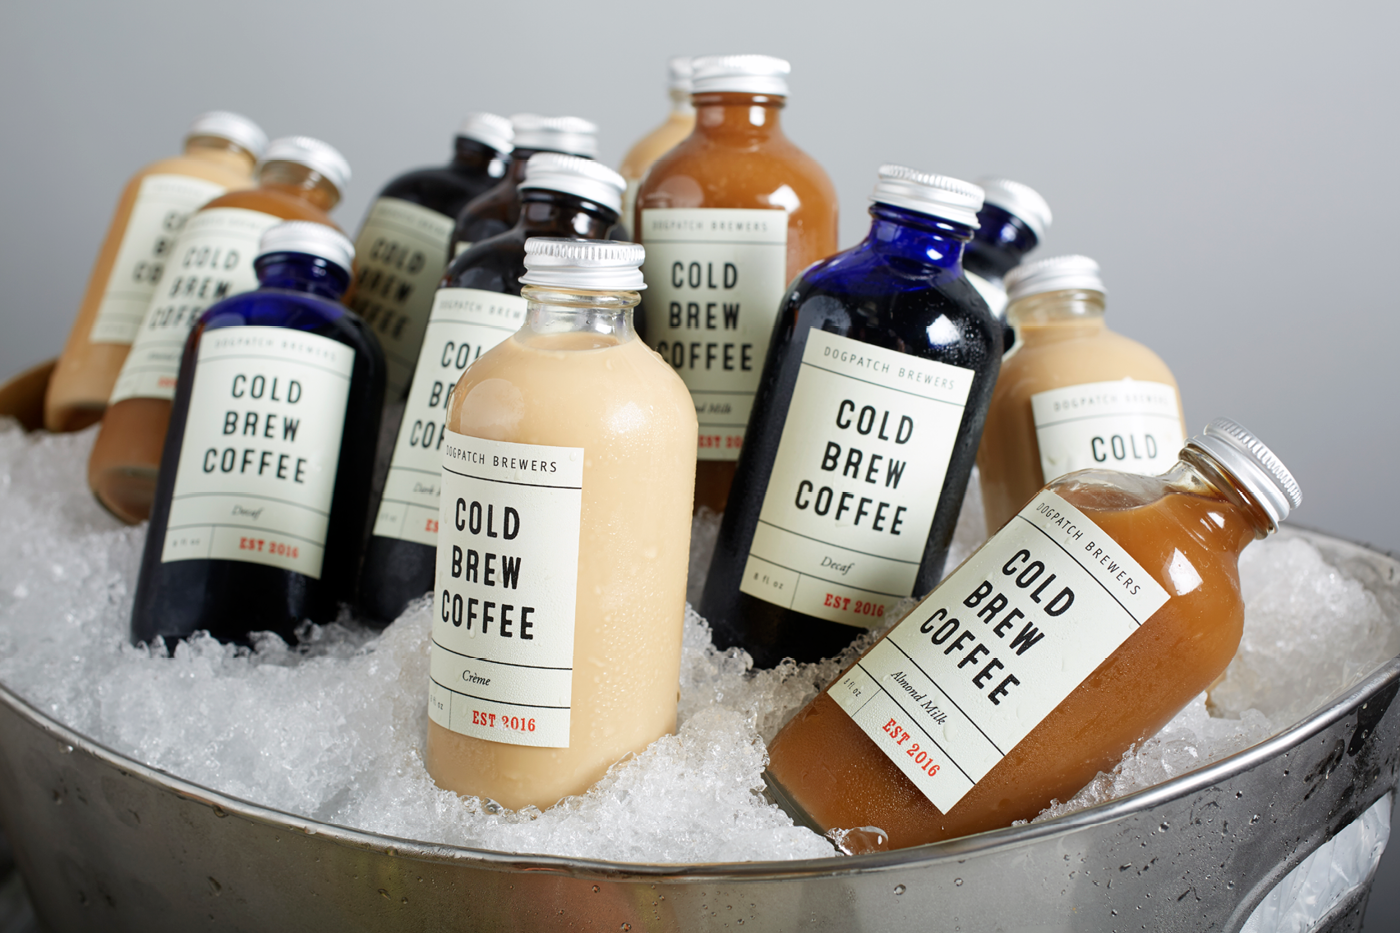 Dogpatch Brewers Cold Brew Coffees